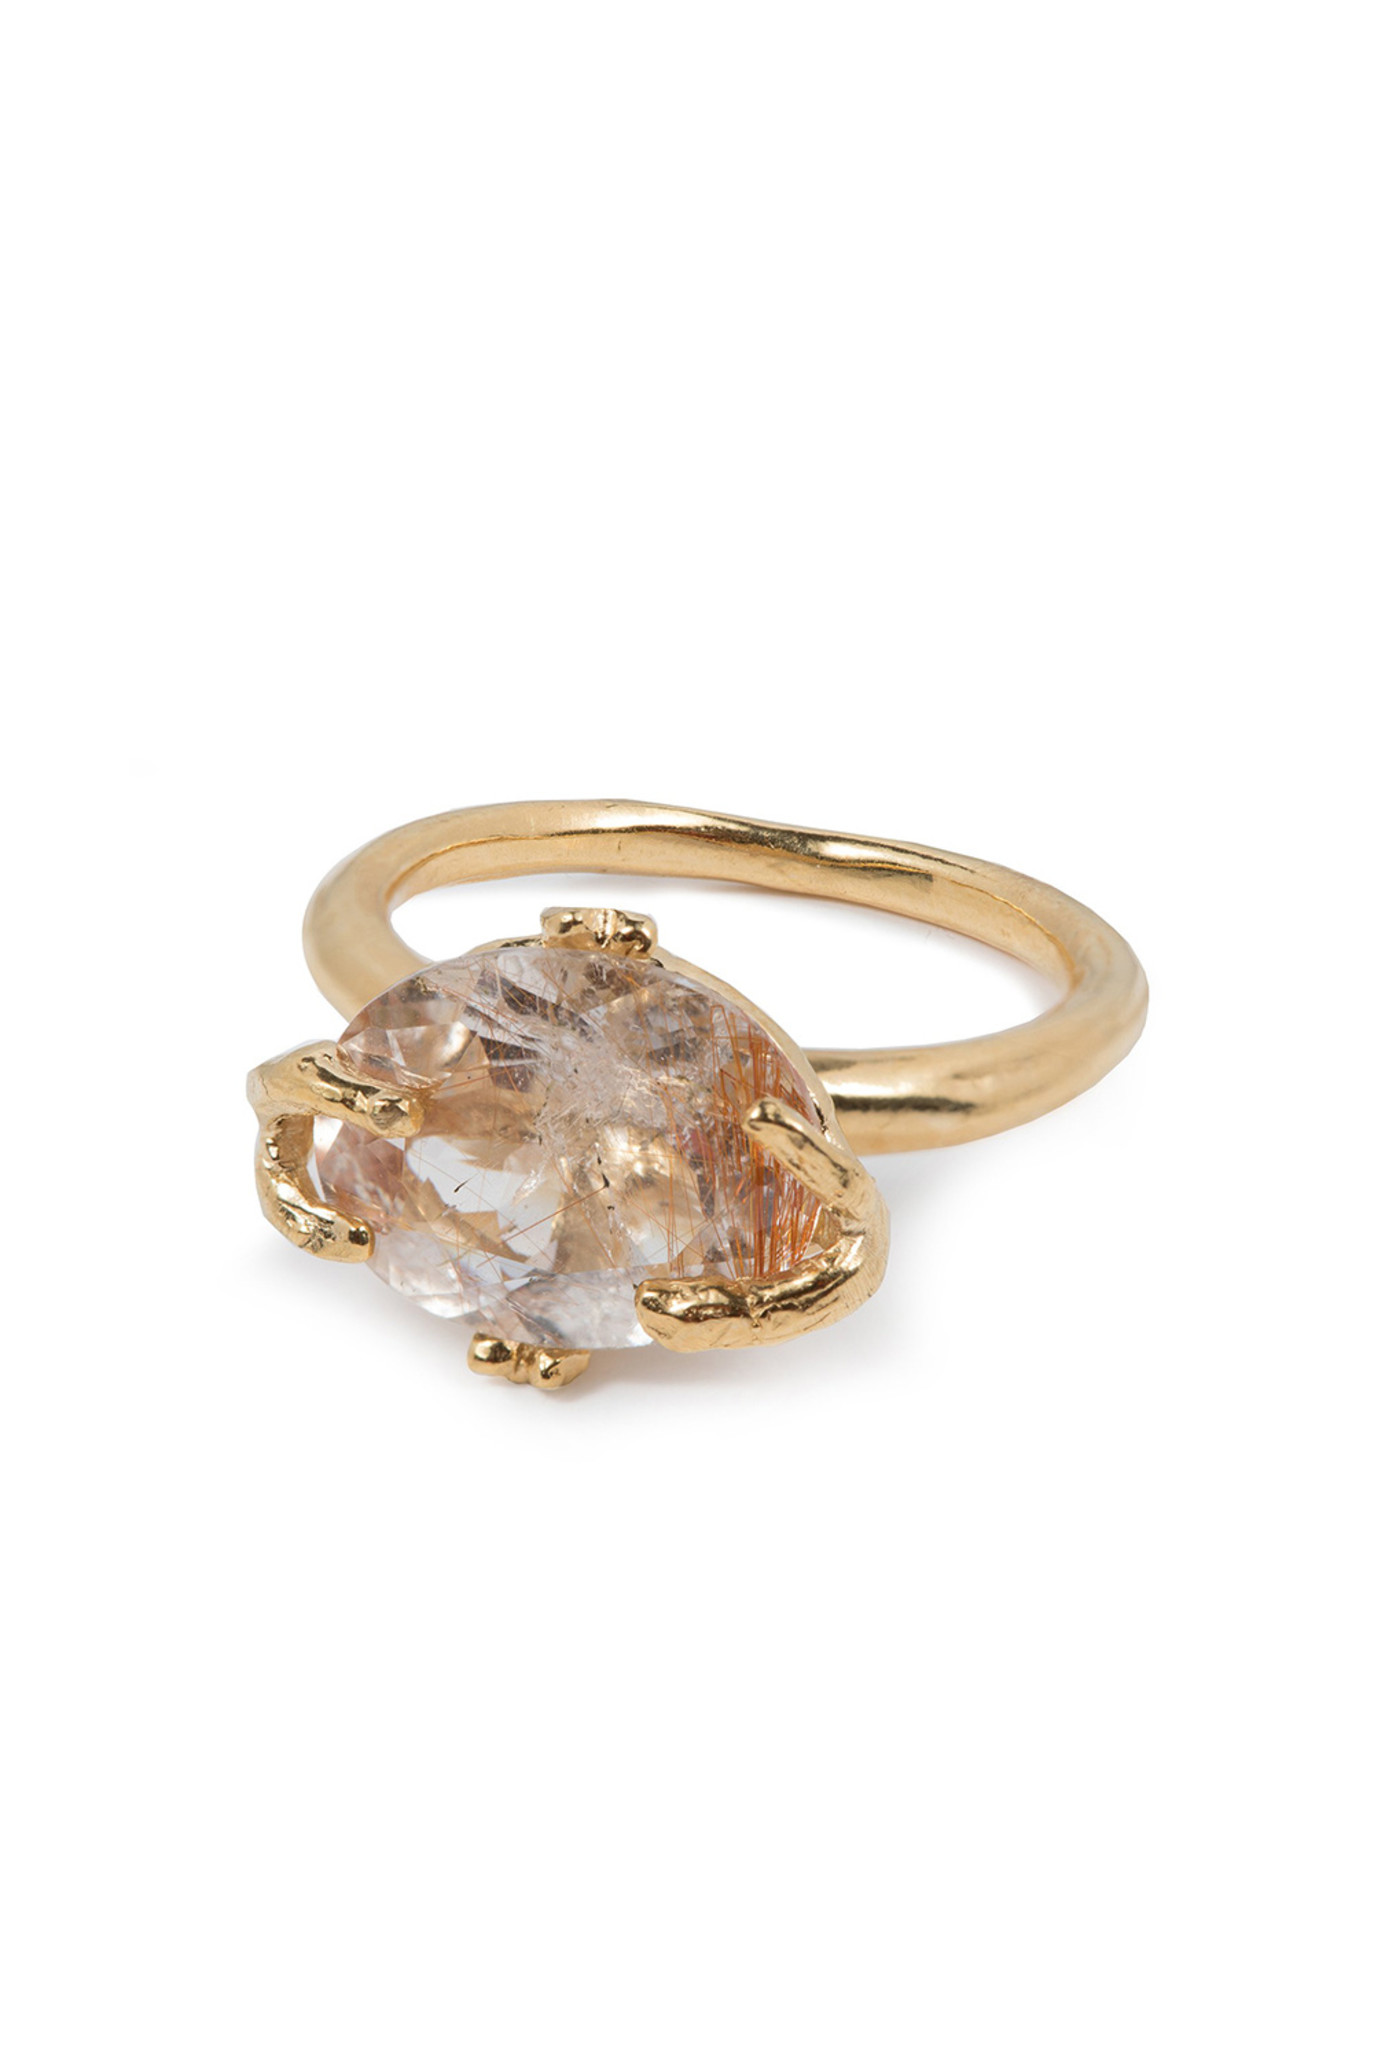 Small rutilated quartz branches ring goldplated